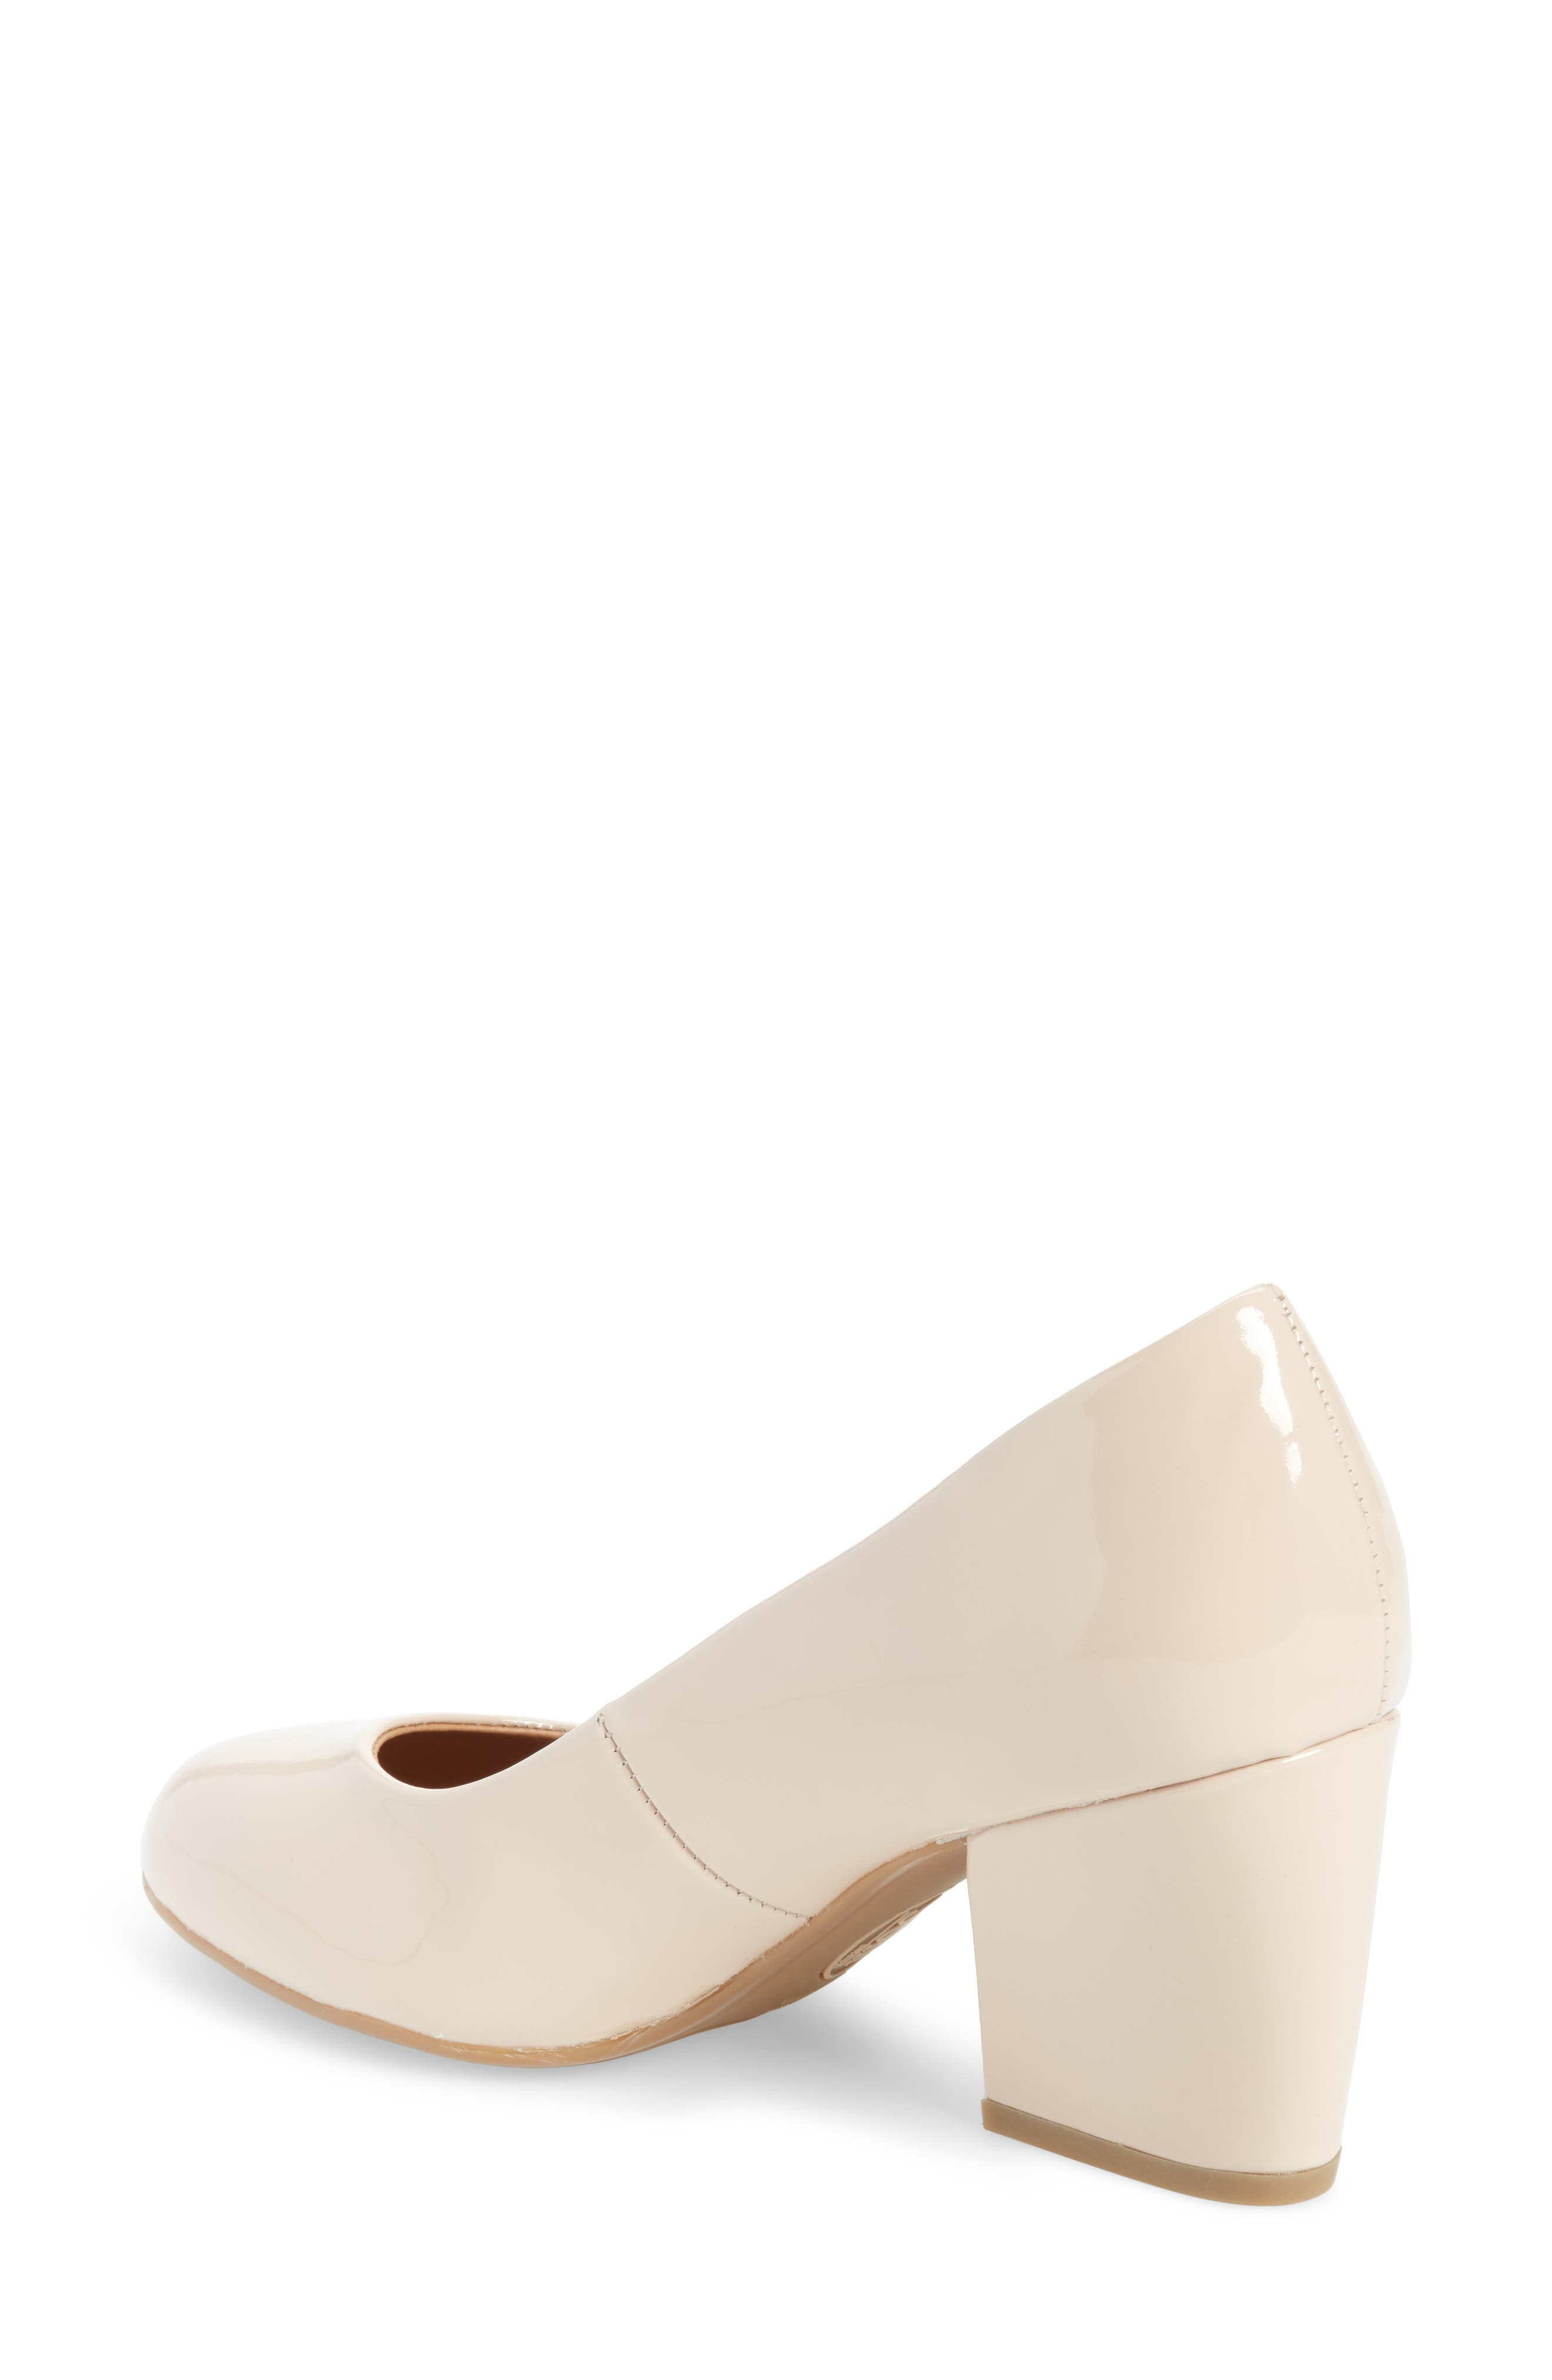 Tamira Pump,                             Alternate thumbnail 2, color,                             Nude Patent Leather